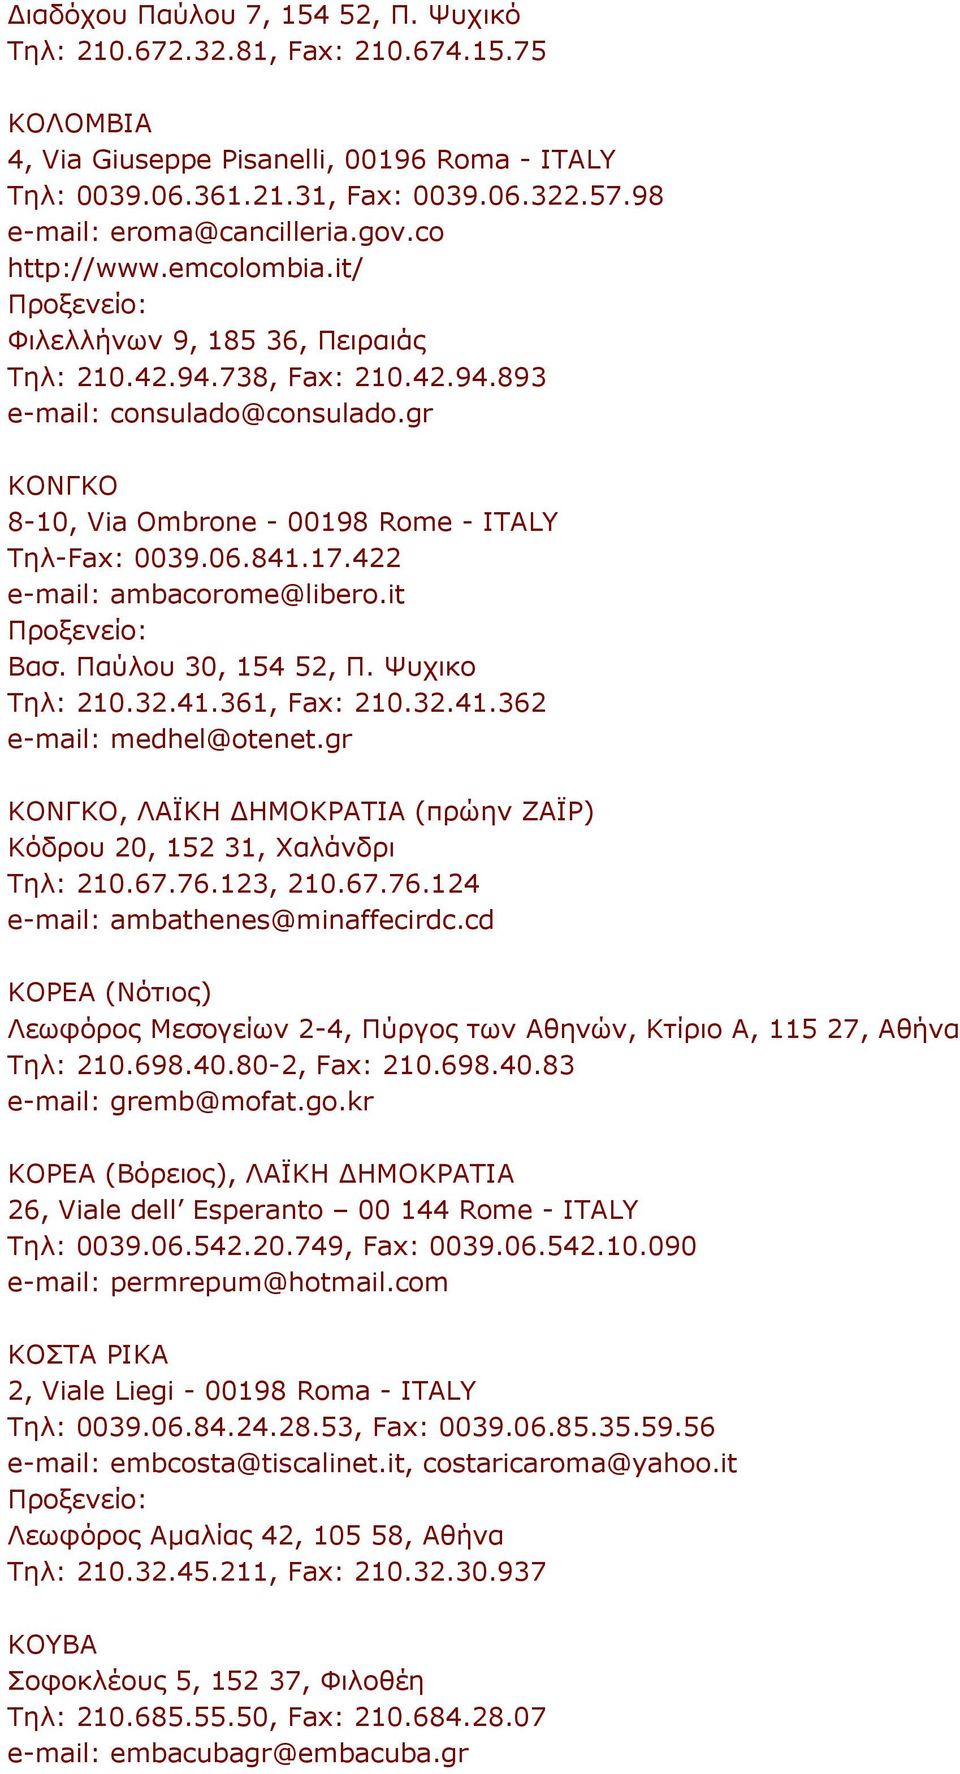 gr ΚΟΝΓΚΟ 8-10, Via Ombrone - 00198 Rome - ITALY Τηλ-Fax: 0039.06.841.17.422 e-mail: ambacorome@libero.it Βασ. Παύλου 30, 154 52, Π. Ψυχικο Τηλ: 210.32.41.361, Fax: 210.32.41.362 e-mail: medhel@otenet.